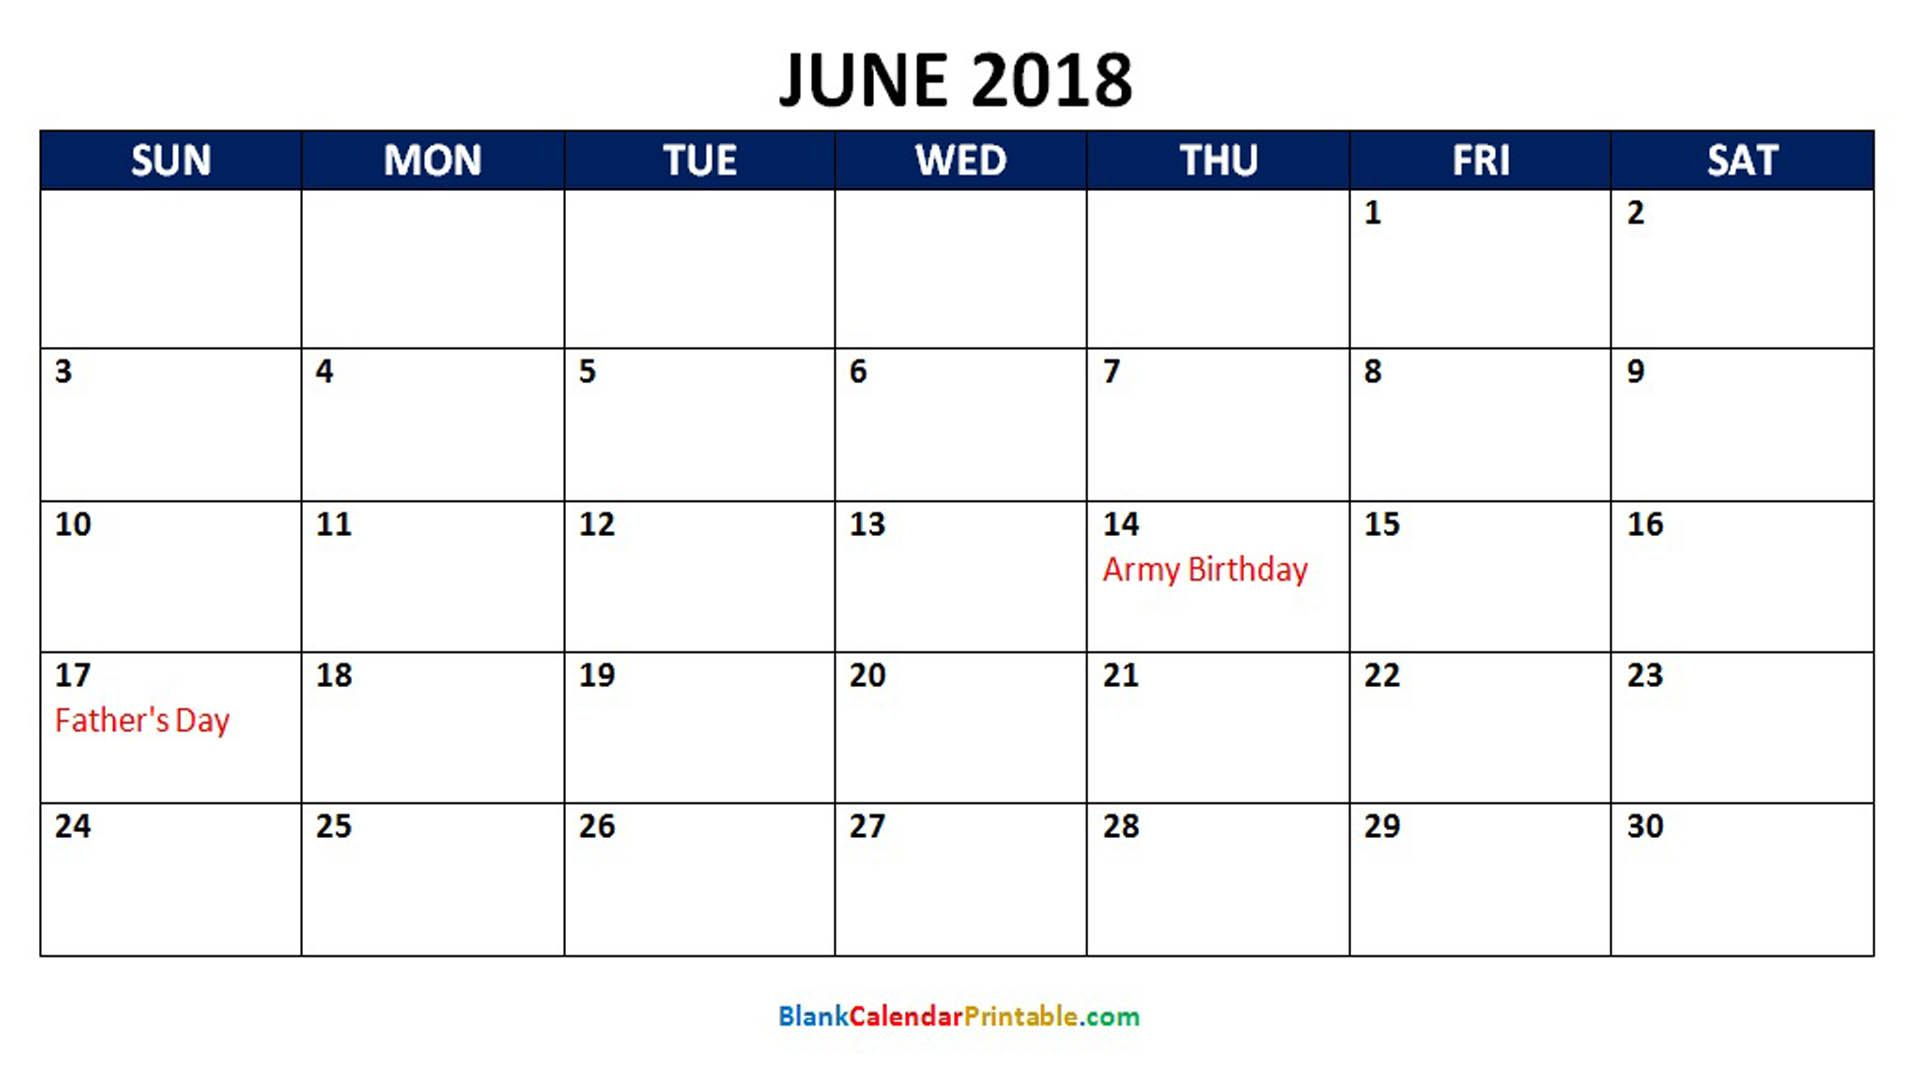 June 2018 Calendar With Holidays Calendar Word 2018 Calendar